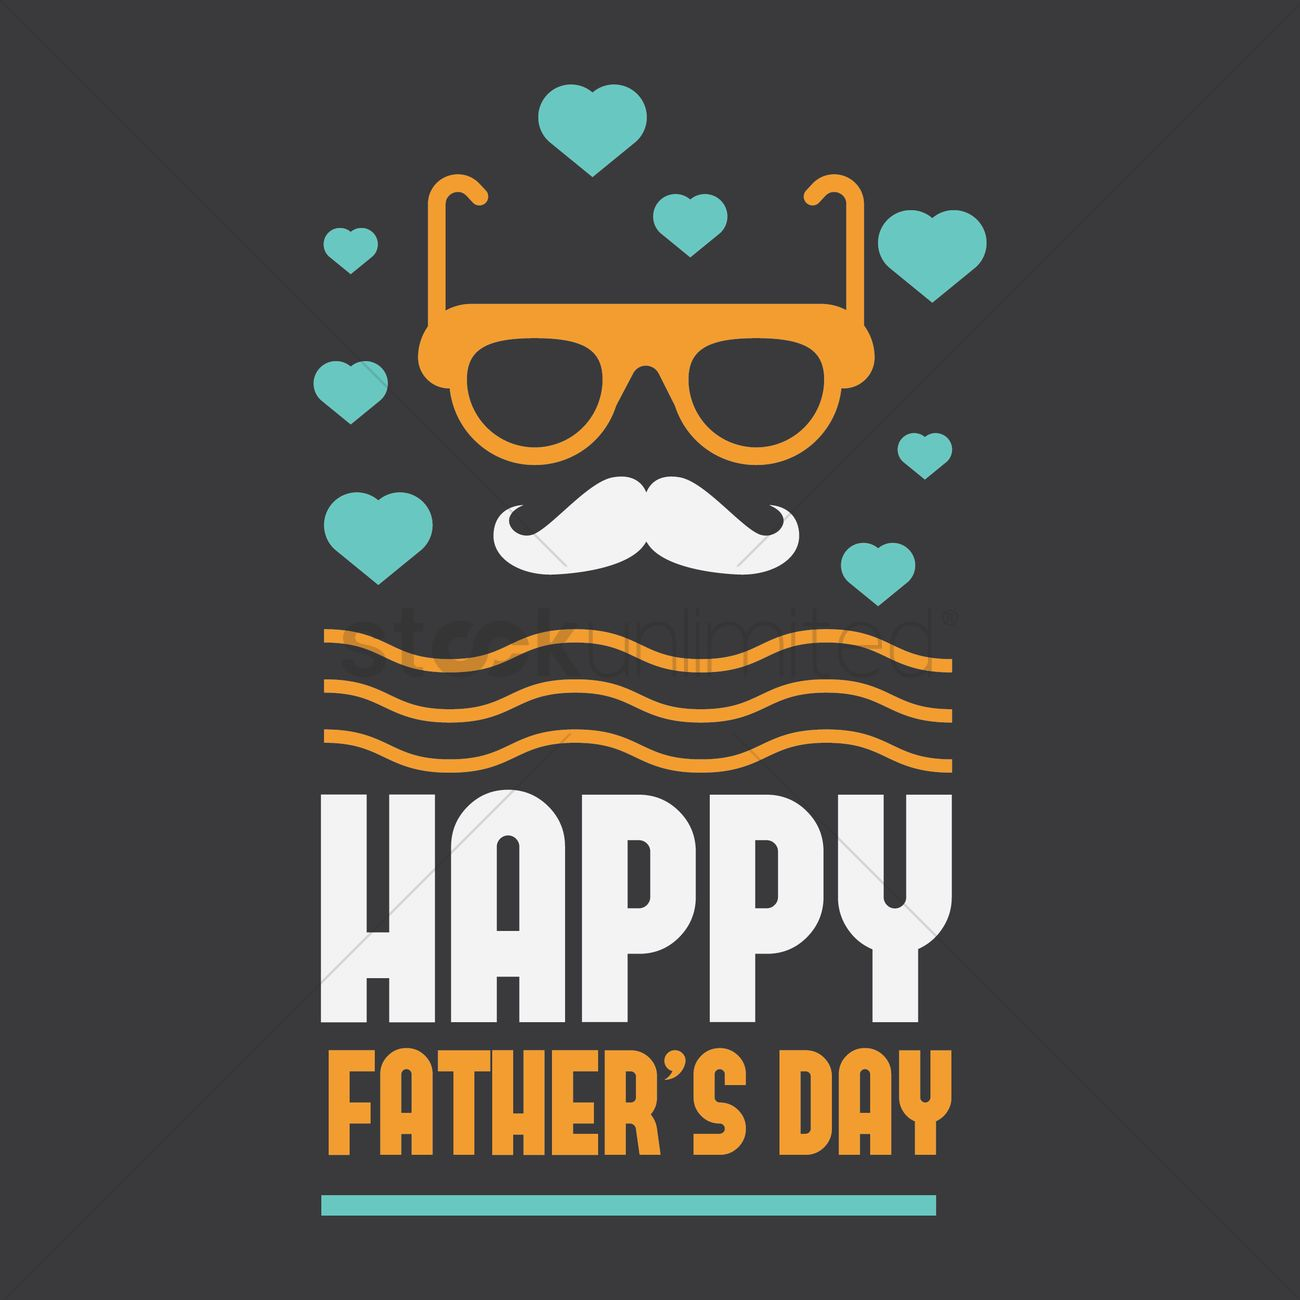 Free Fathers Day Greeting Card Vector Image 1539828 Stockunlimited